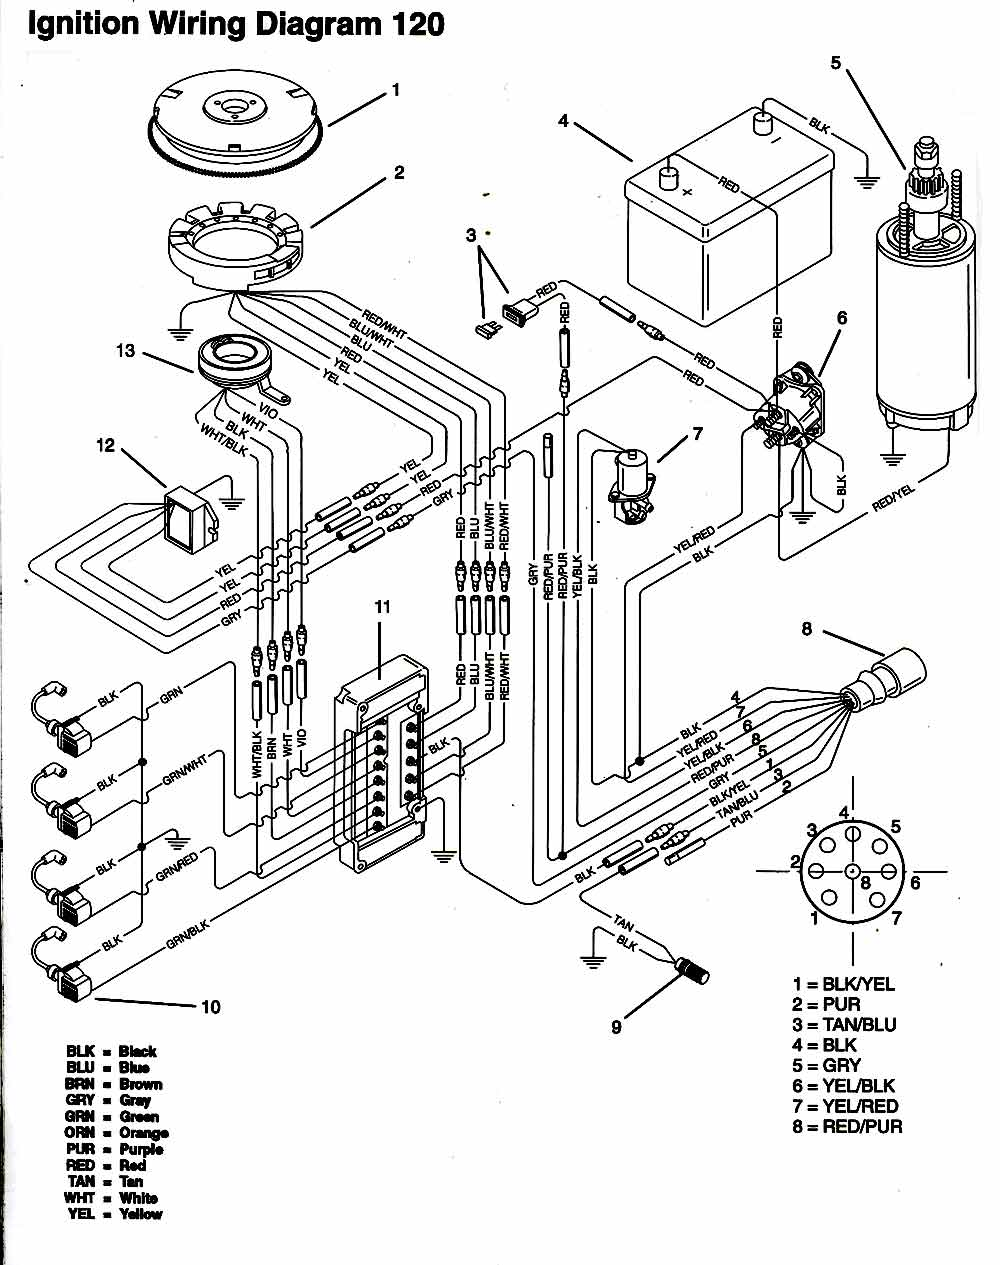 Awesome b18c wiring diagram gallery 454 mercruiser wiring diagram